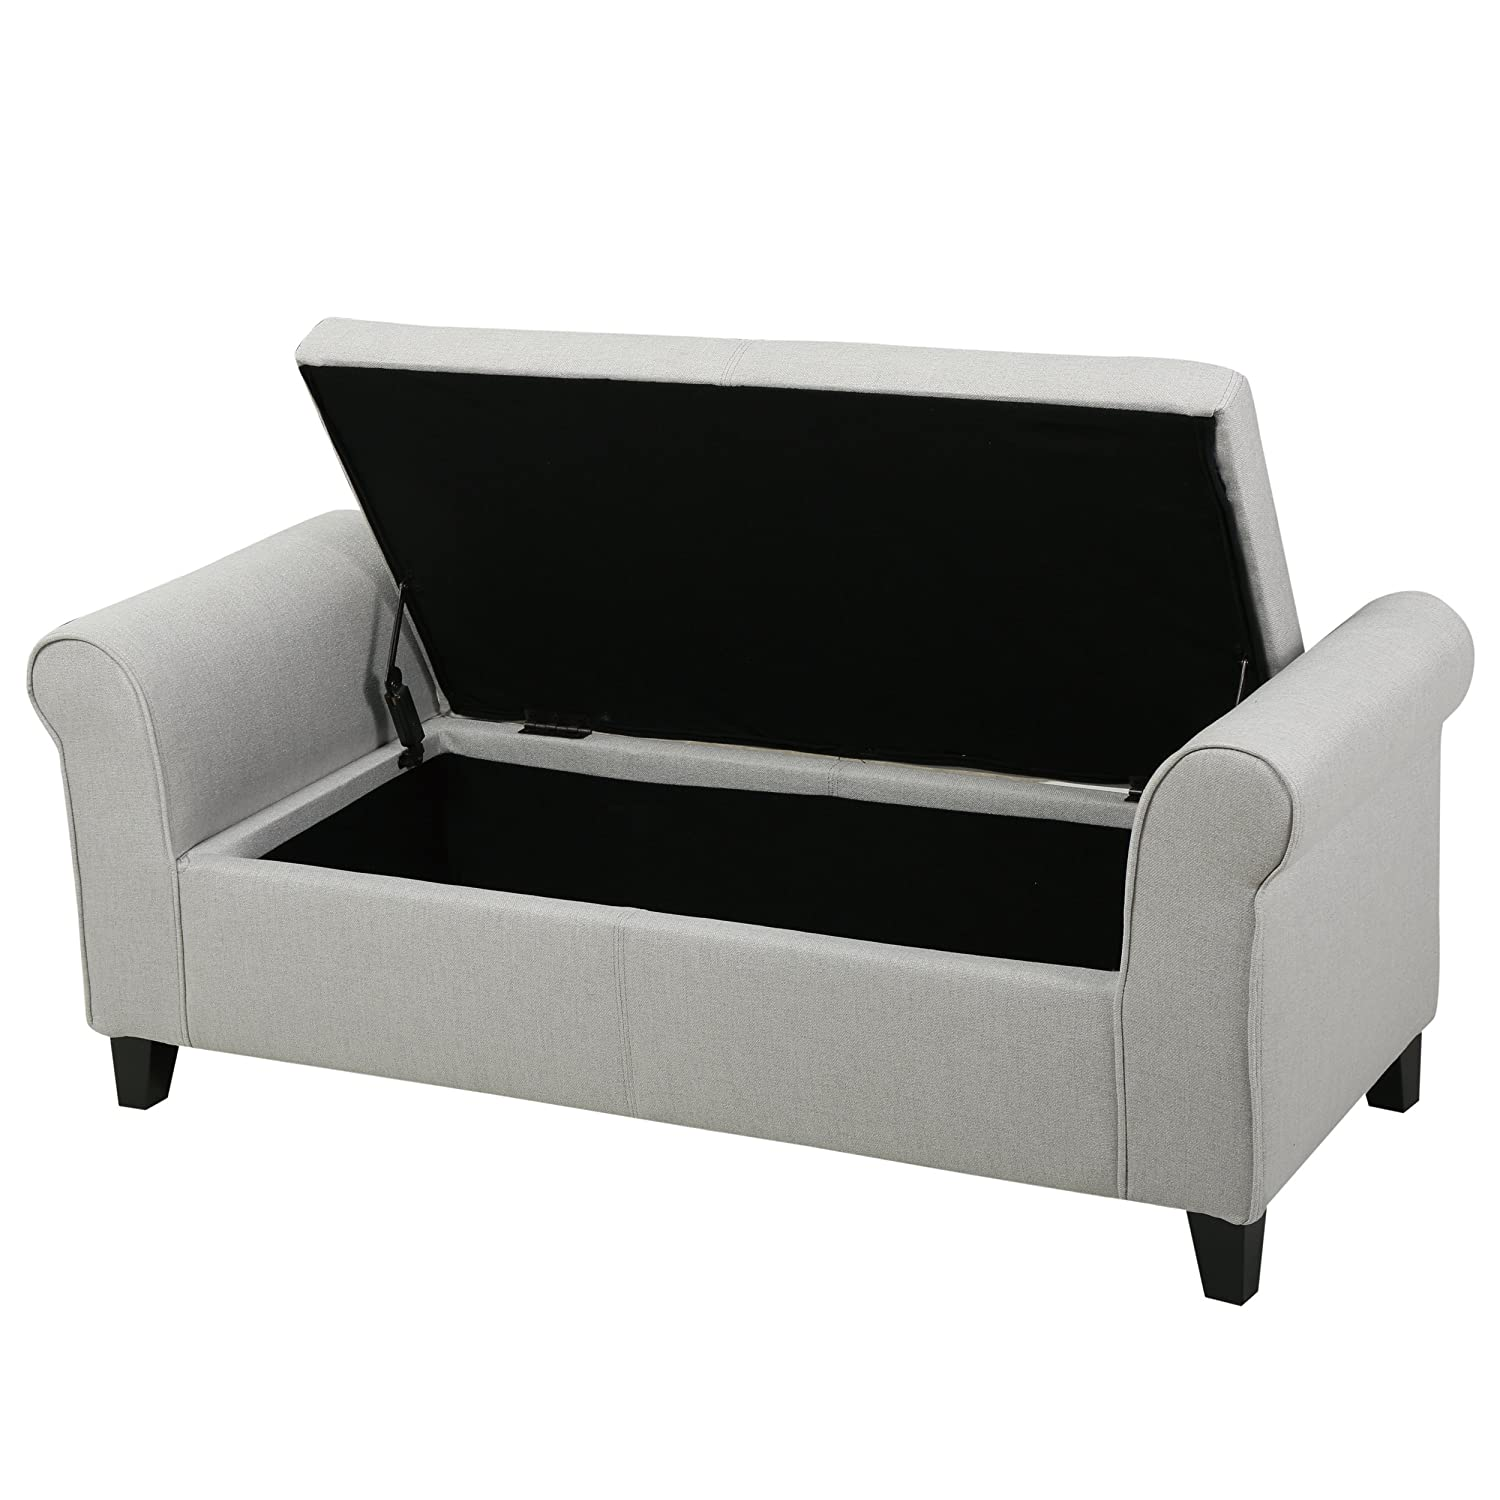 Genial Amazon.com: Danbury Light Grey Fabric Armed Storage Ottoman Bench: Kitchen  U0026 Dining